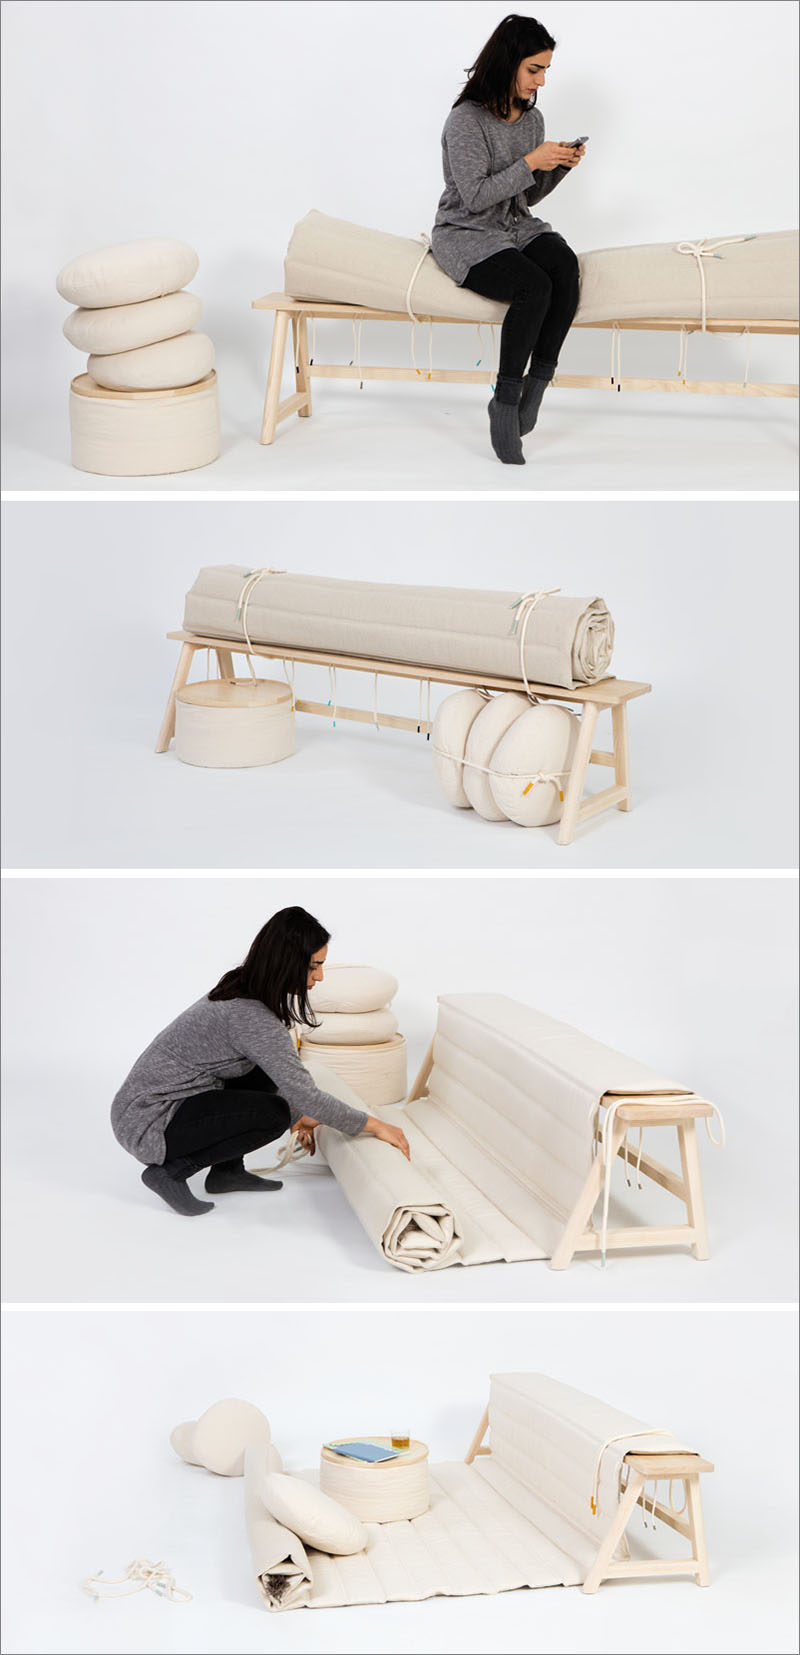 Floora, a furniture piece designed by Lis Eich, is a simple wood bench with a cushion that can be unrolled to create additional seating spaces on the floor.